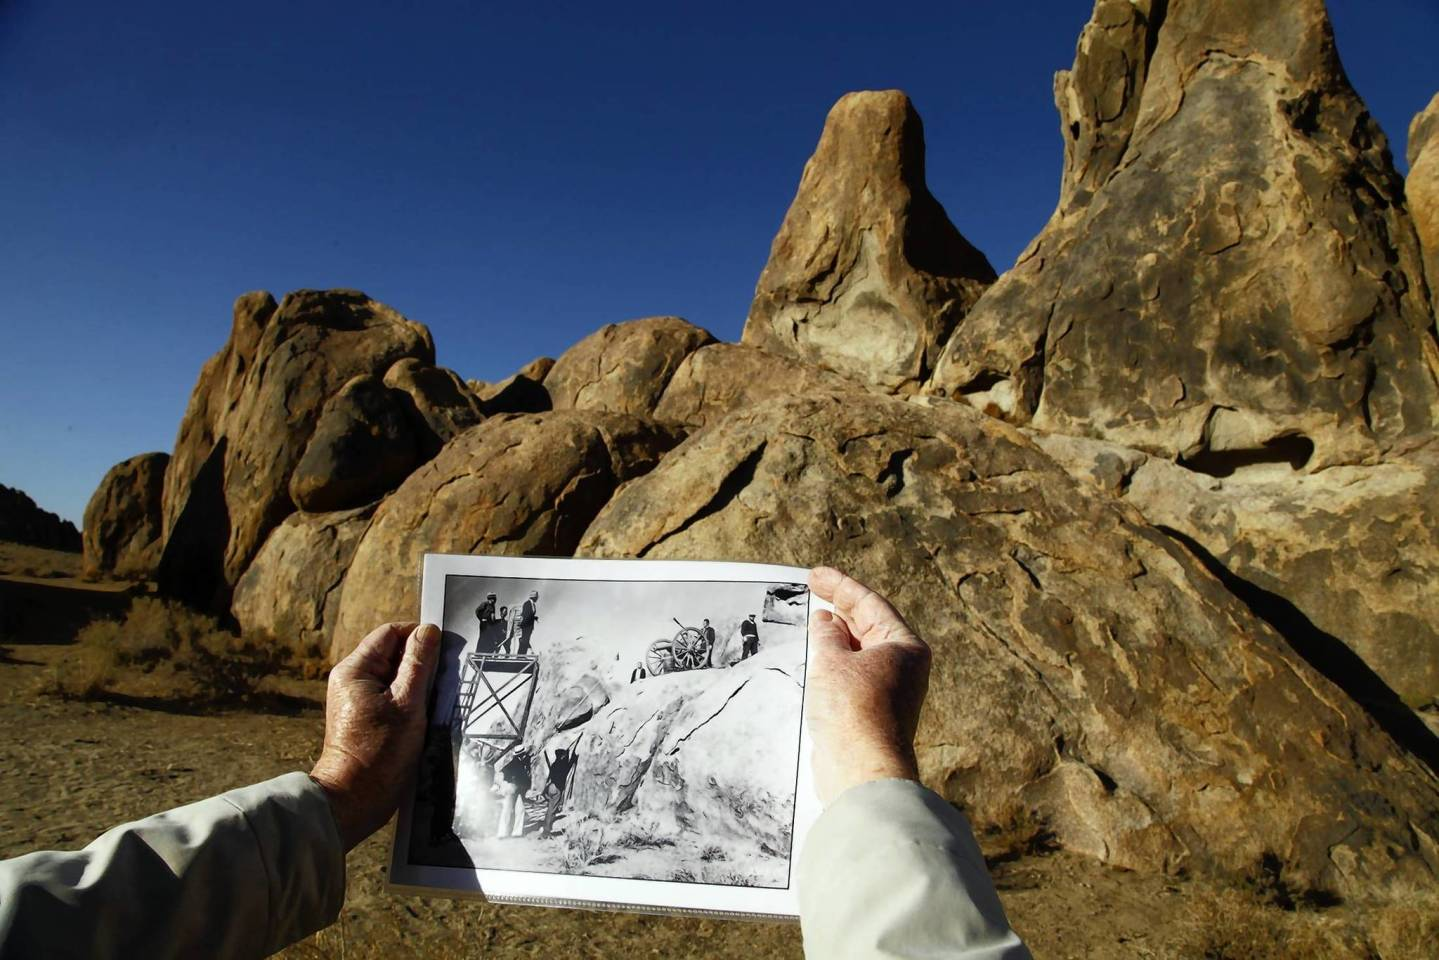 LA Times Photo of Alabama Hills, Inyo County